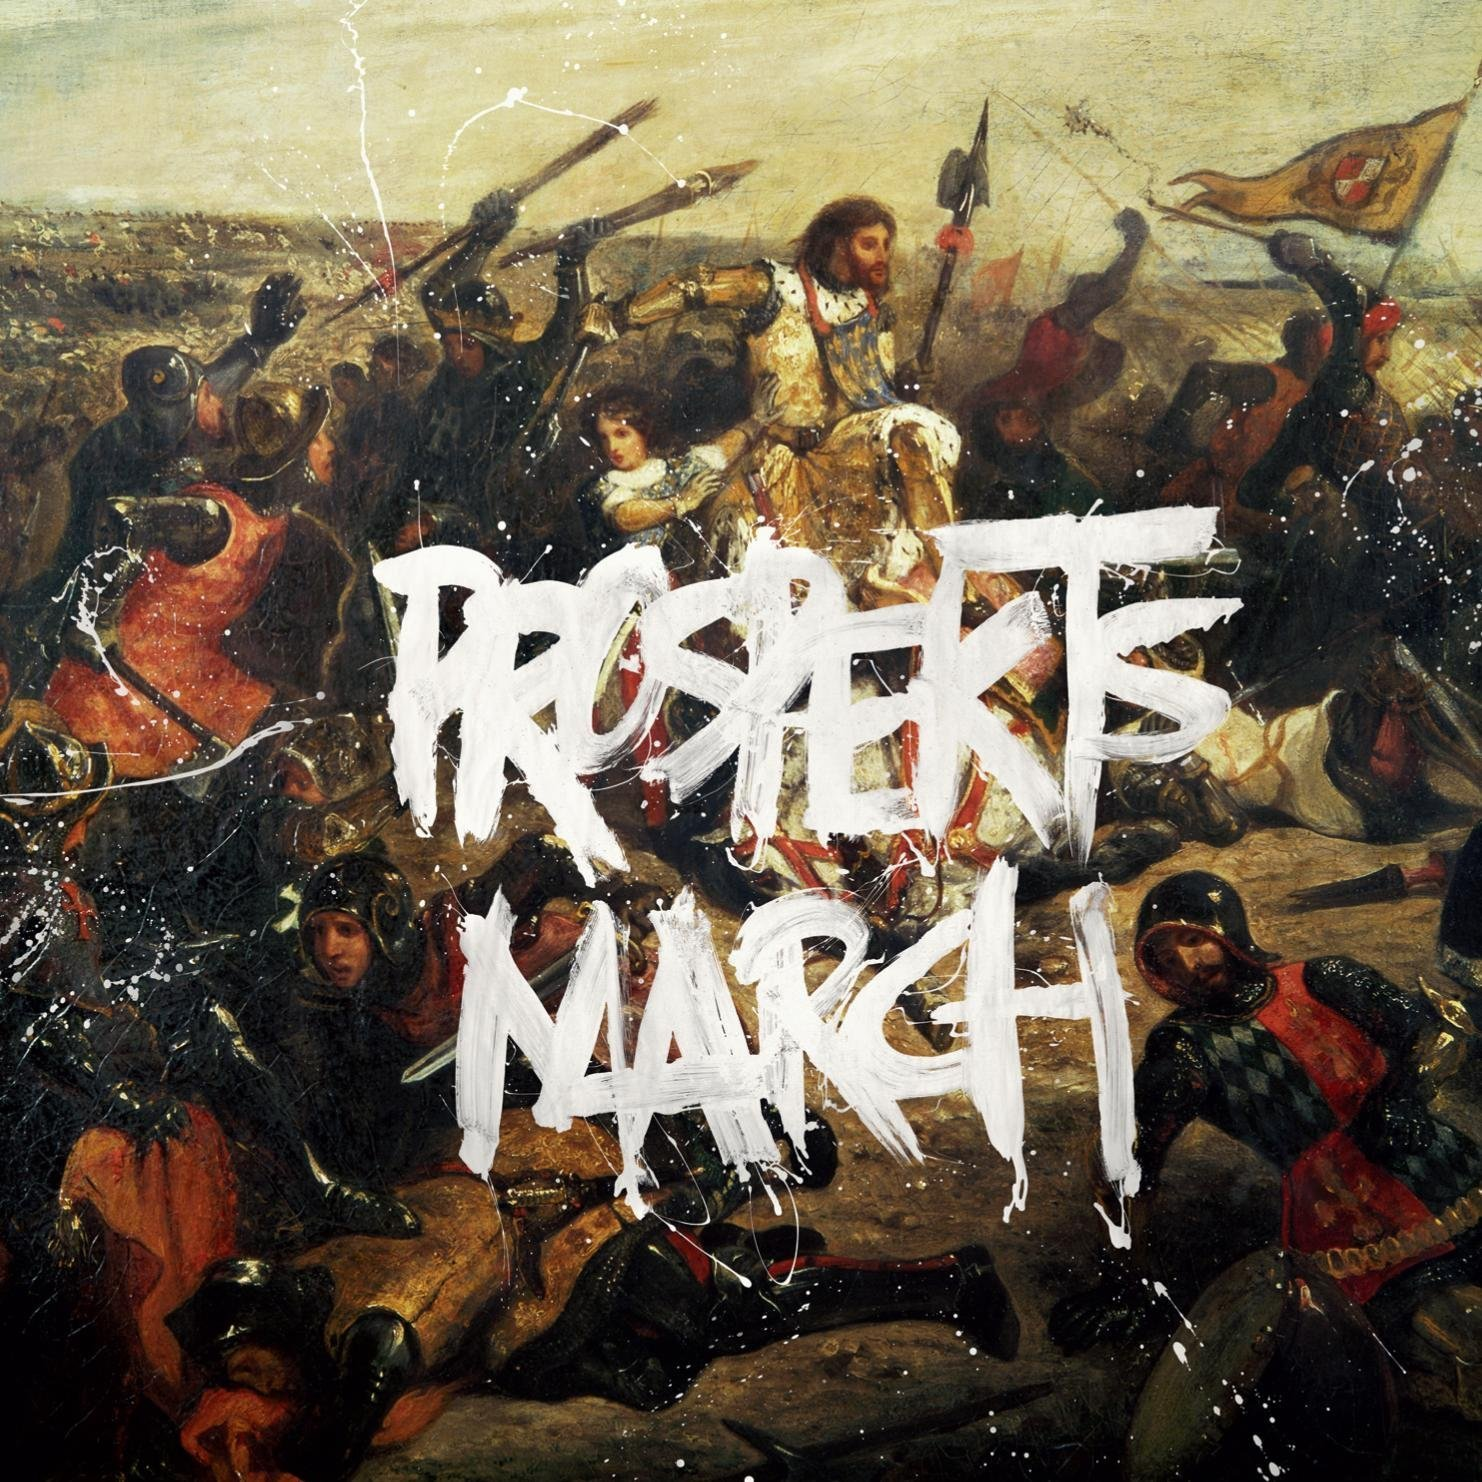 Prospekt's March by Capitol